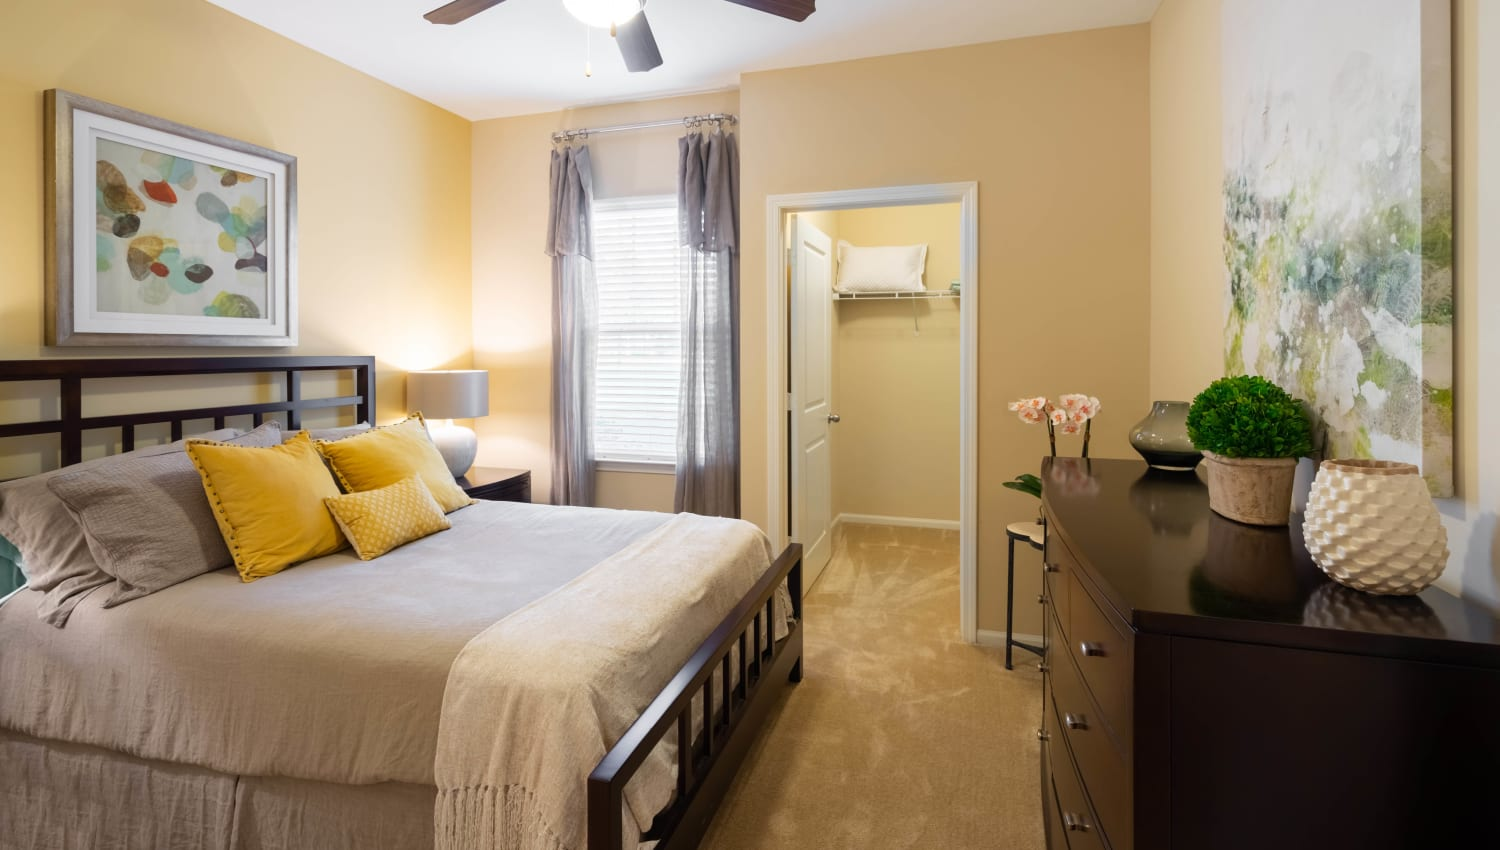 Ceiling fan and plush carpeting in a model home's bedroom at Legends at White Oak in Ooltewah, Tennessee